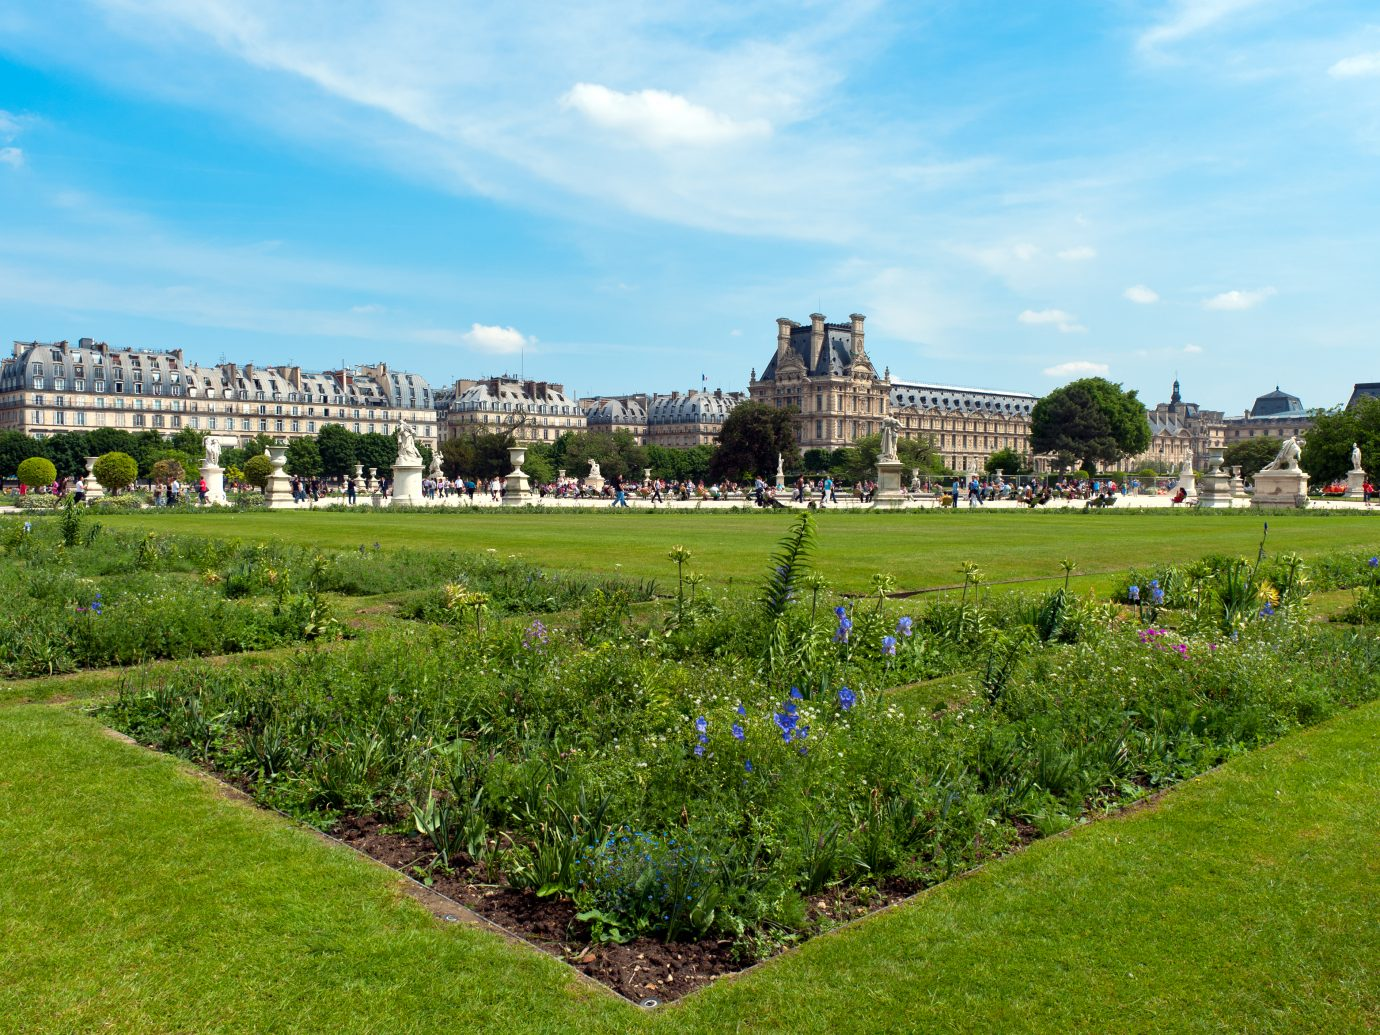 The Tuileries Gardens with the Louvre in the background.